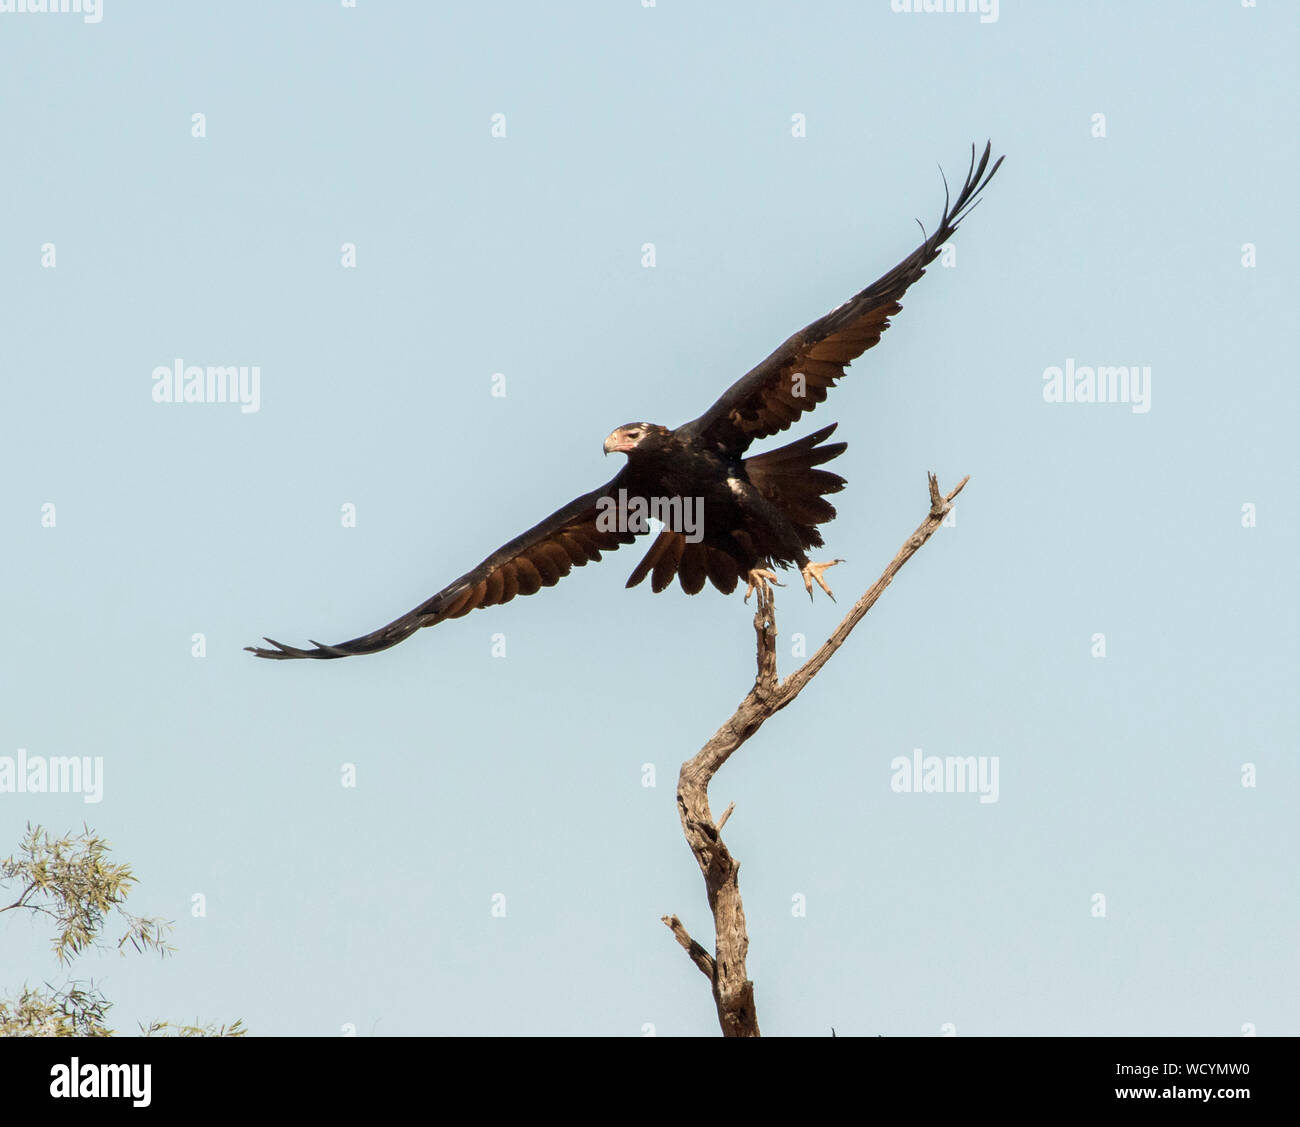 Australian Wedge-tailed eagle, Aquila audax, a bird of prey, in fight against light blue sky in outback Queensland Stock Photo